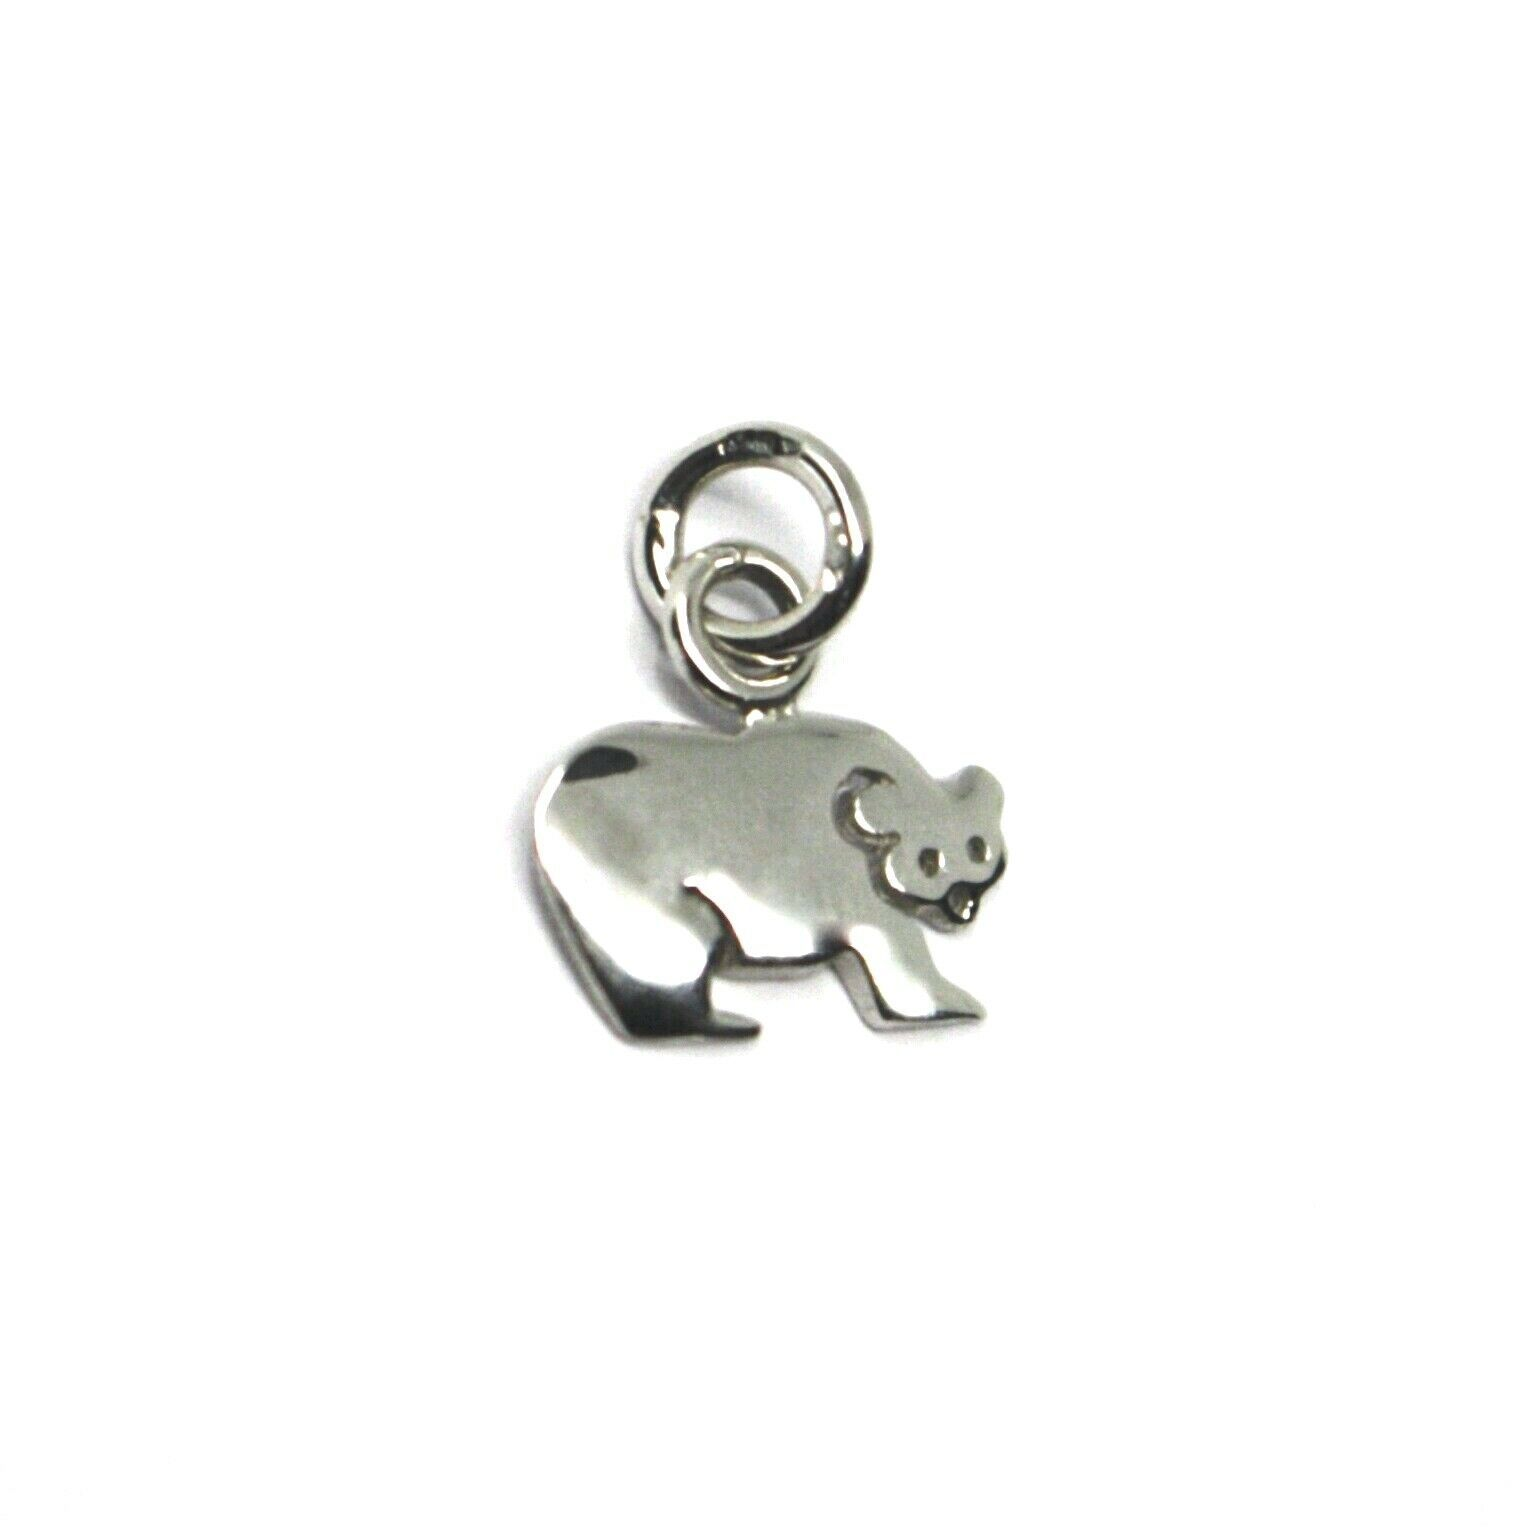 18K WHITE GOLD MINI BEAR PENDANT 11mm DIAMETER, FLAT SOLID, SMOOTH MADE IN ITALY